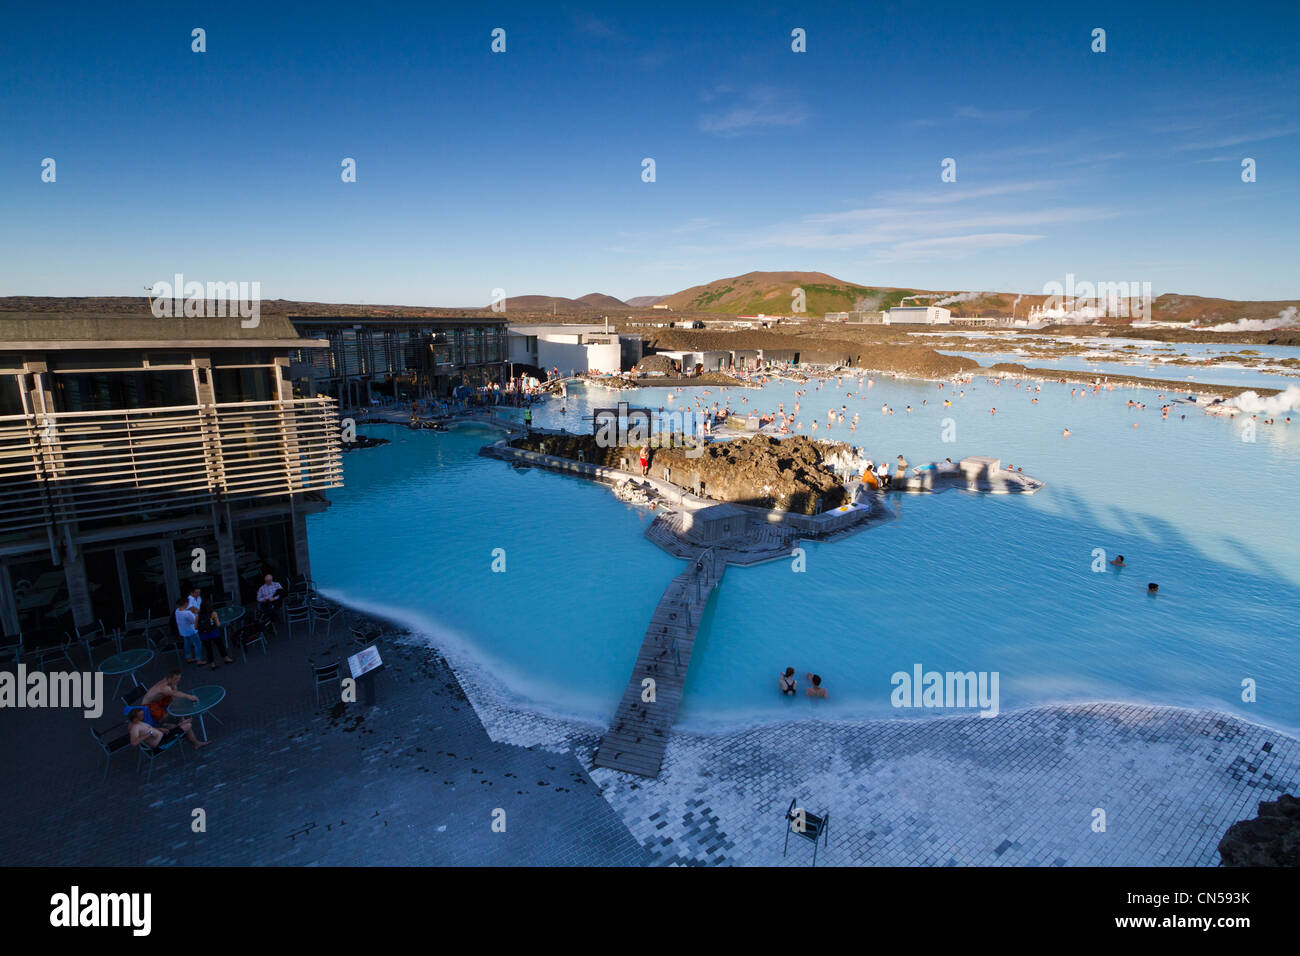 Iceland sudurnes region reykjanes peninsula blue lagoon for Hotels near the blue lagoon iceland